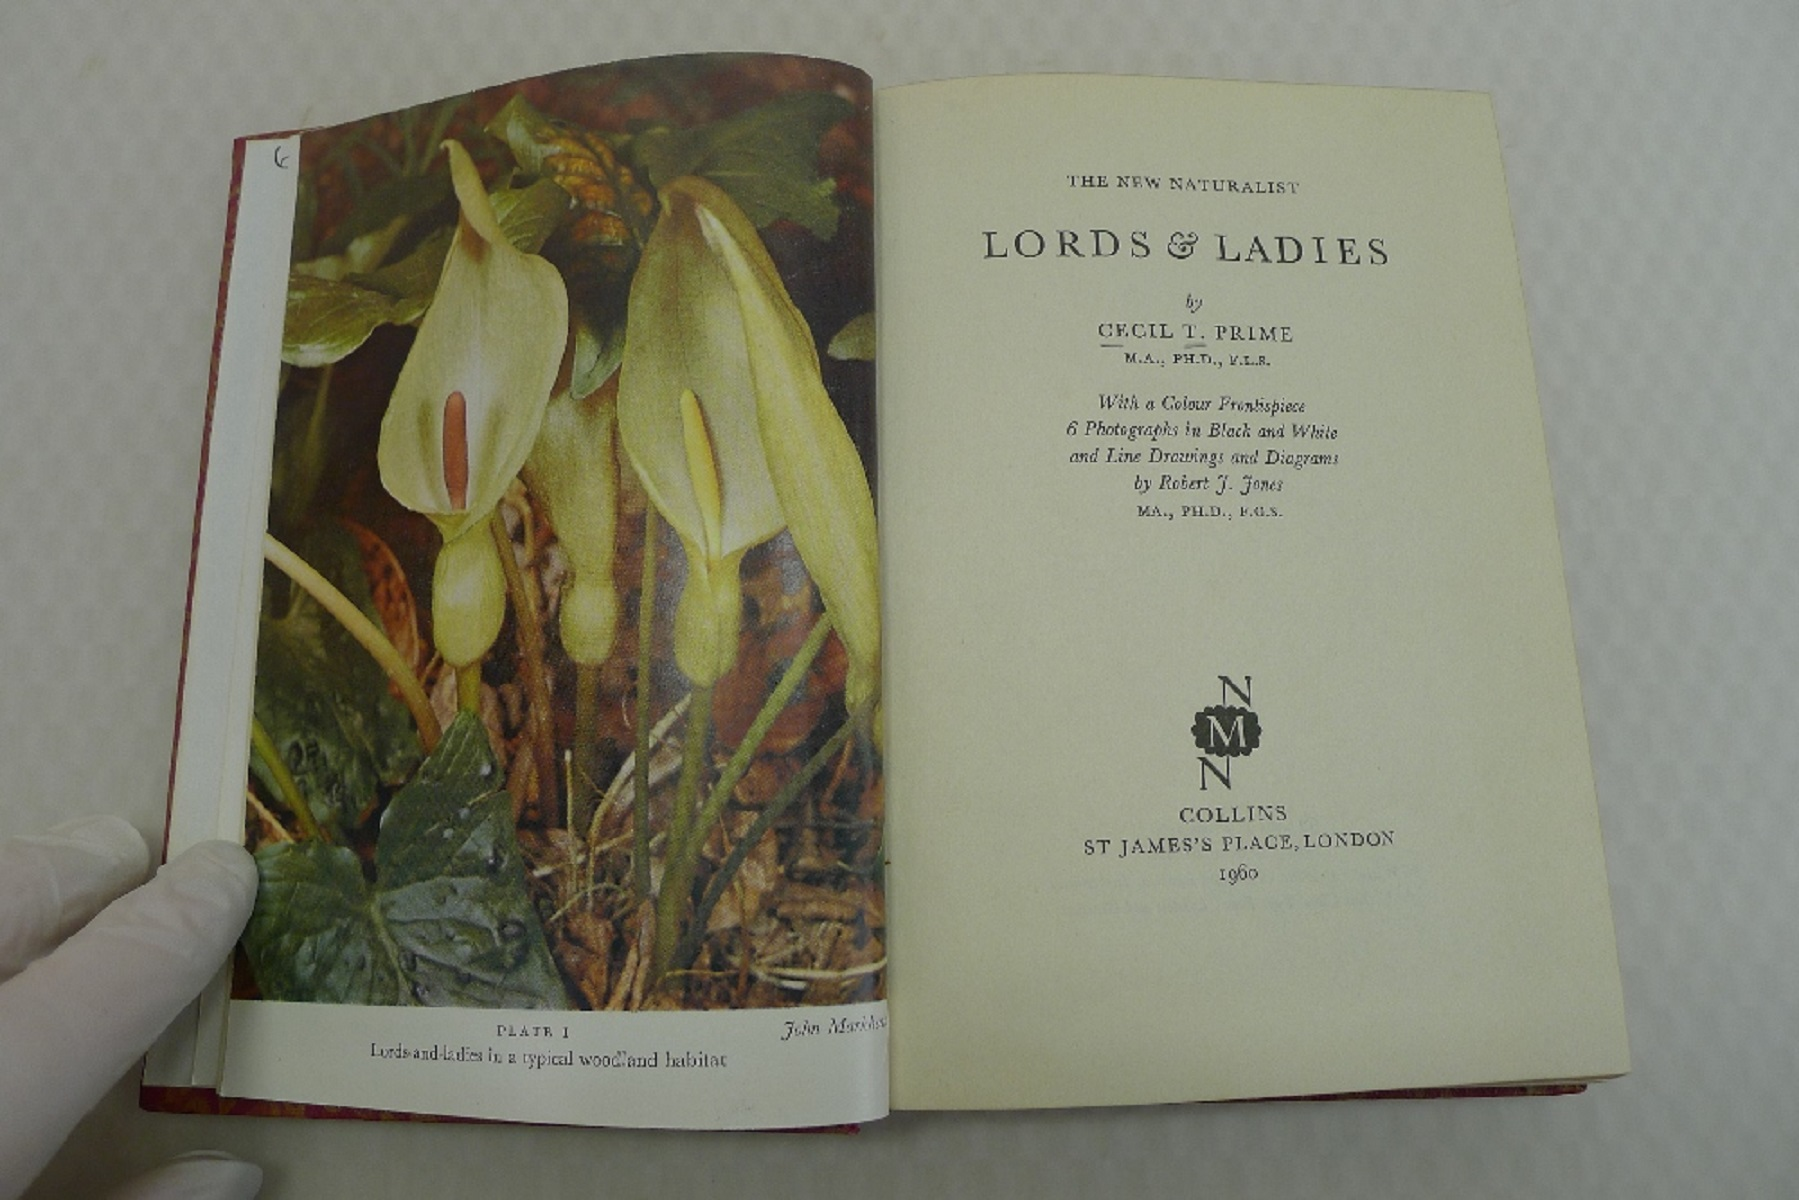 Lords and Ladies by Cecil T Prime published by Collins London 1960 First Edition A New Naturalist - Image 4 of 5